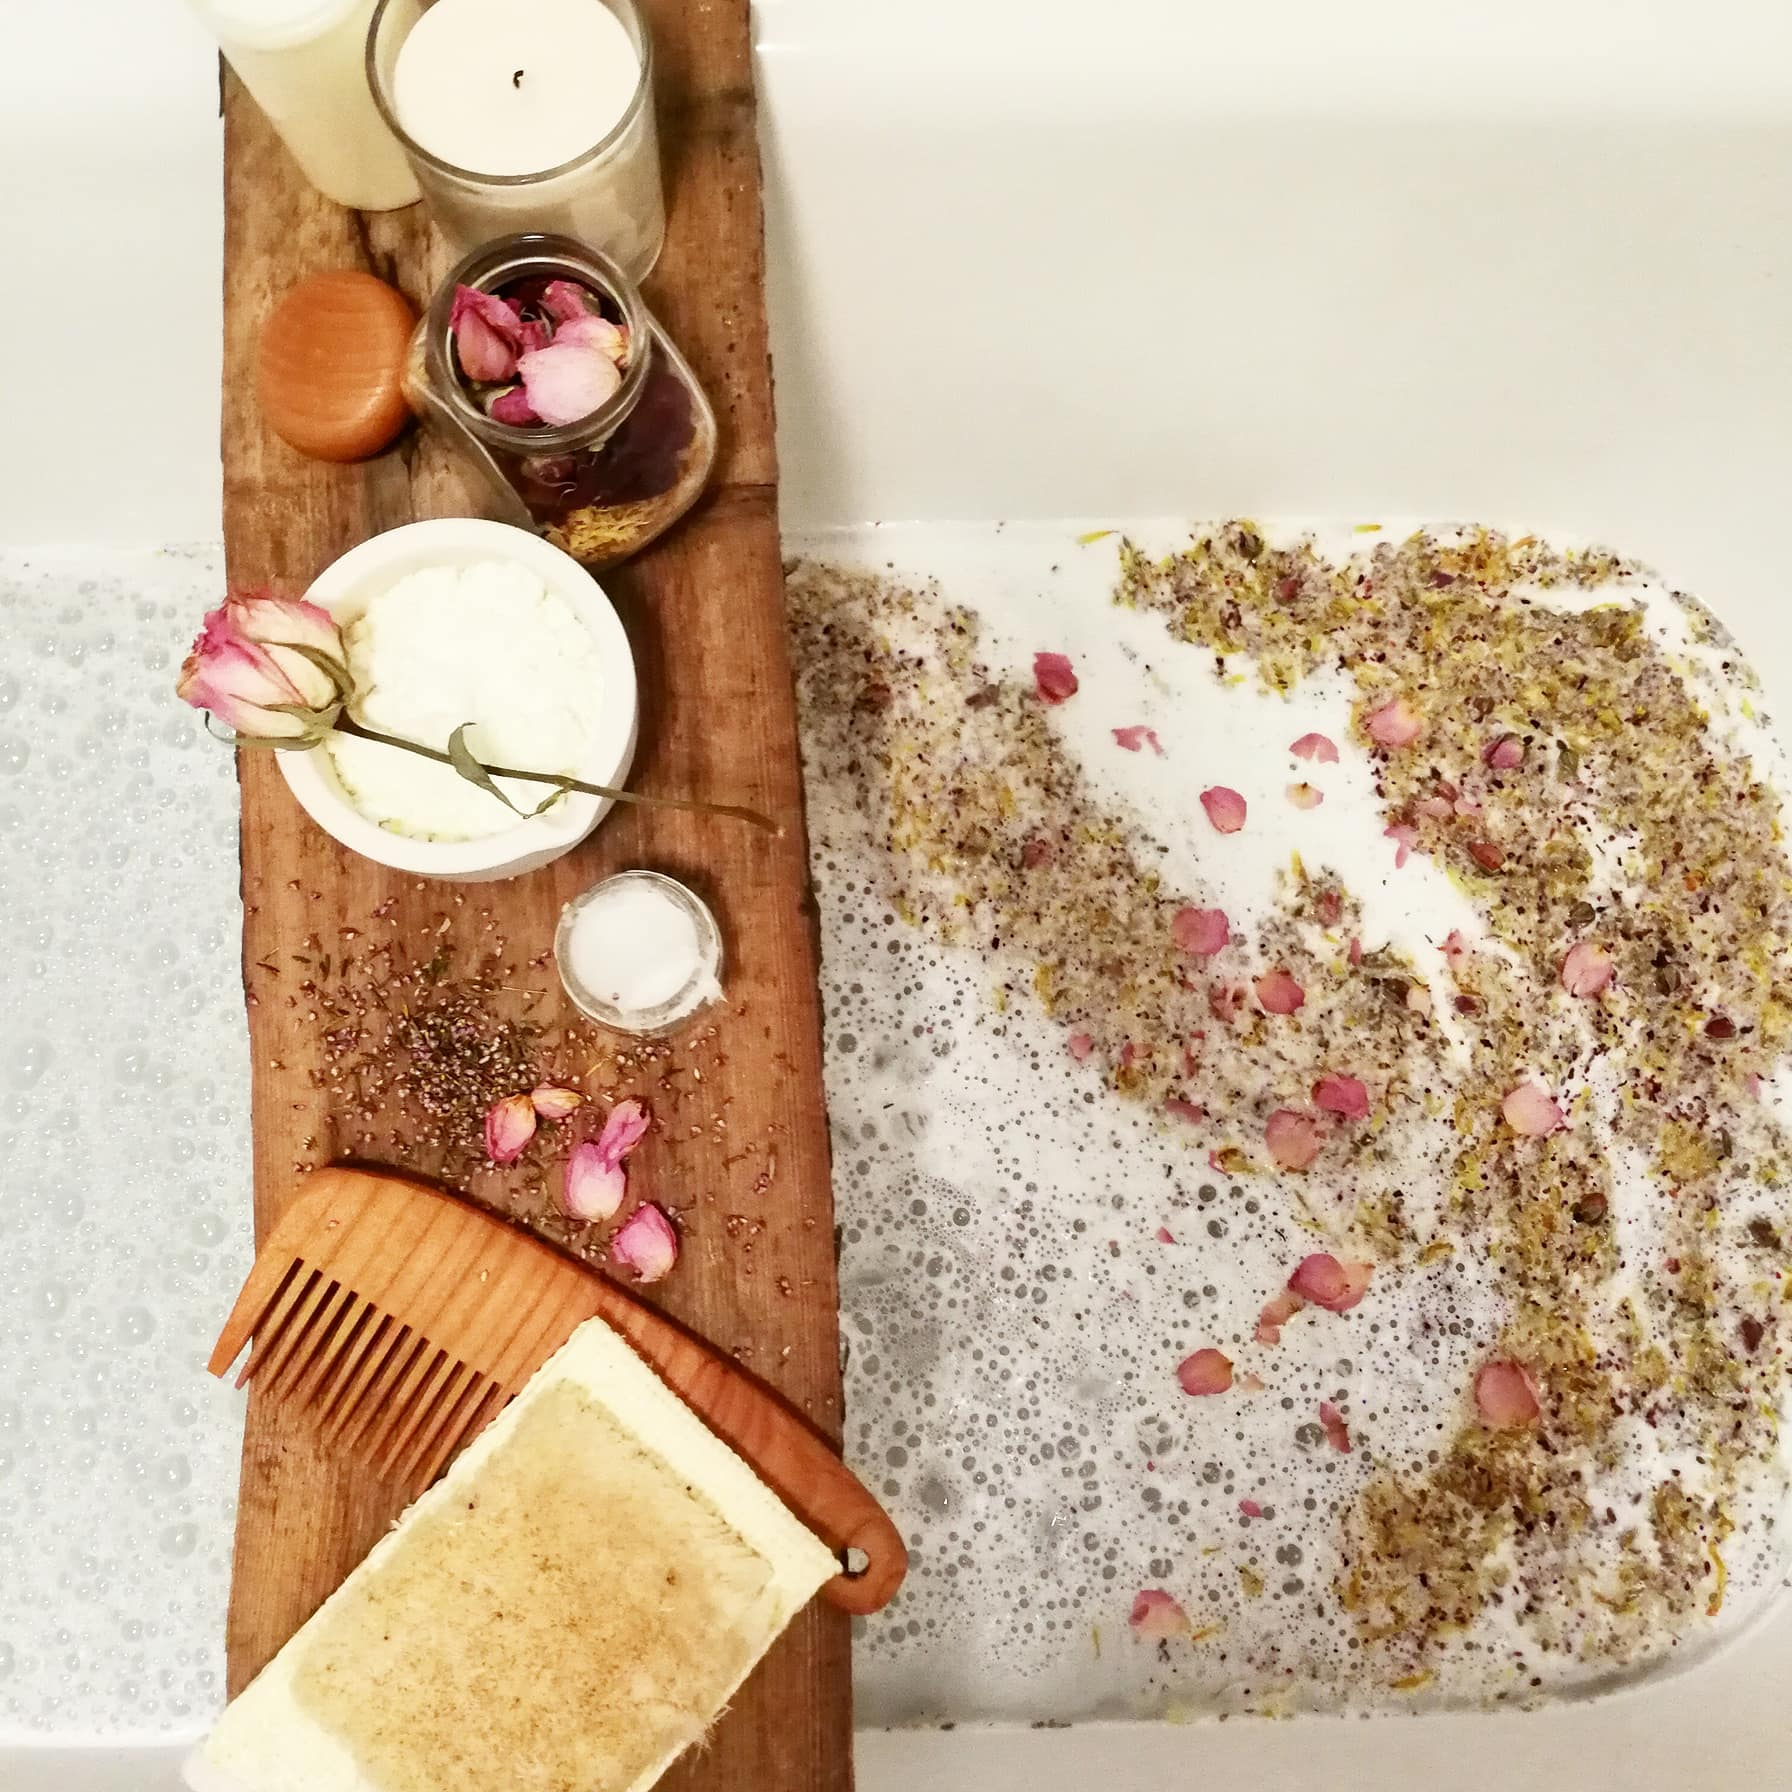 Relaxing herbal milk bath